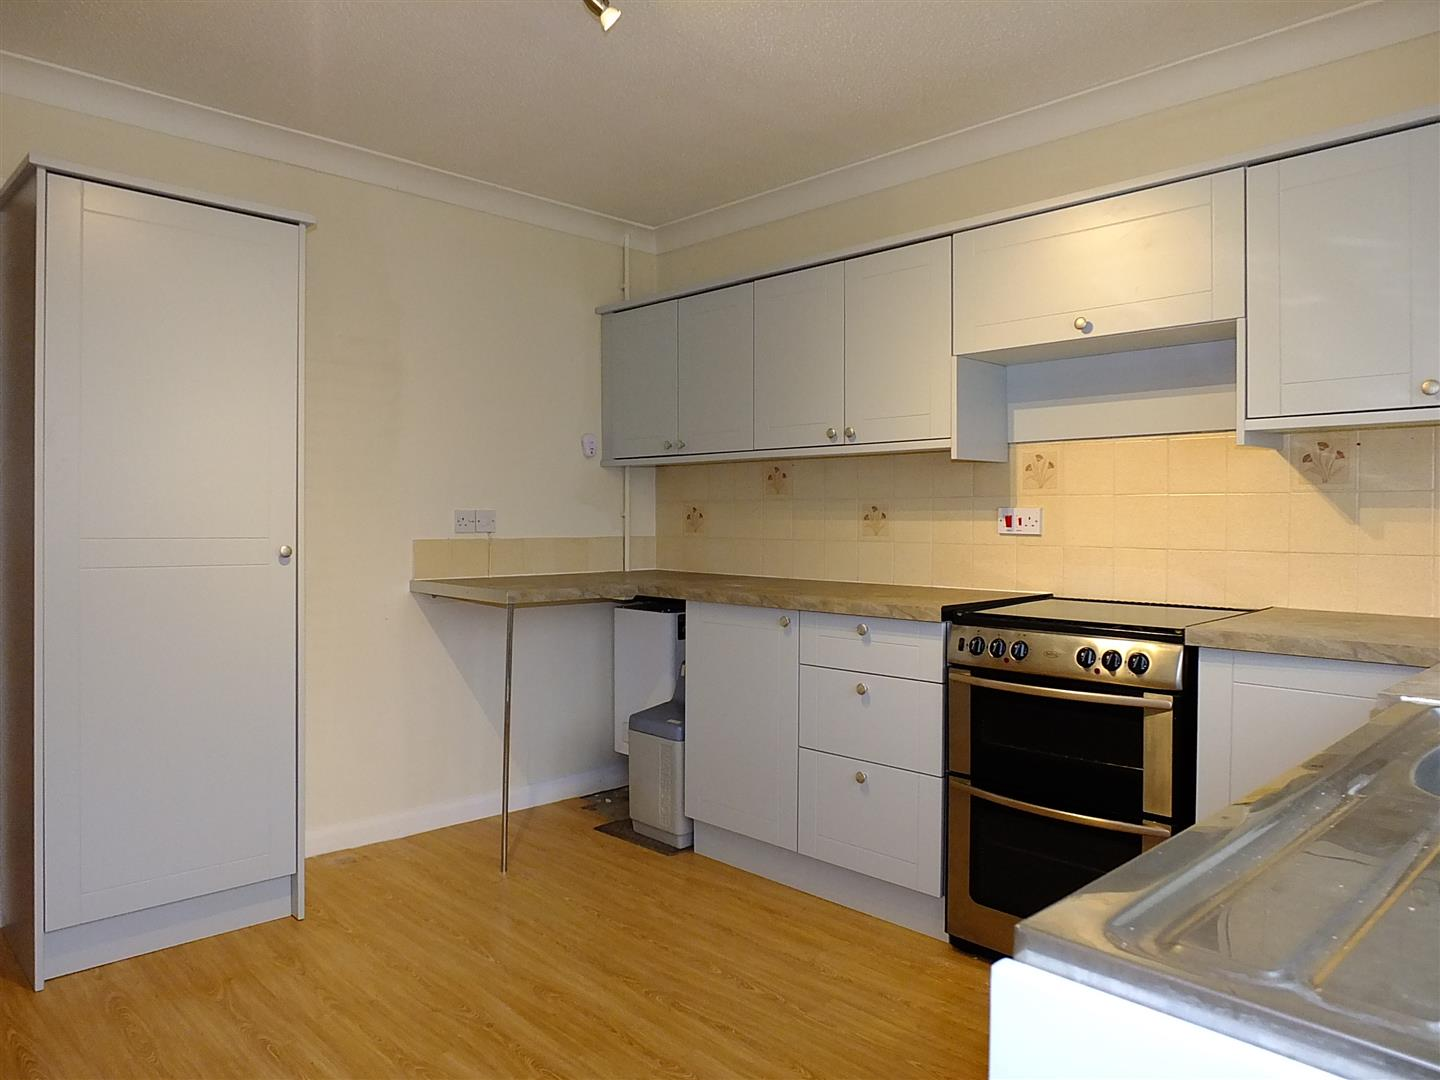 3 bed detached bungalow to rent in Long Sutton Spalding, PE12 9LY  - Property Image 7